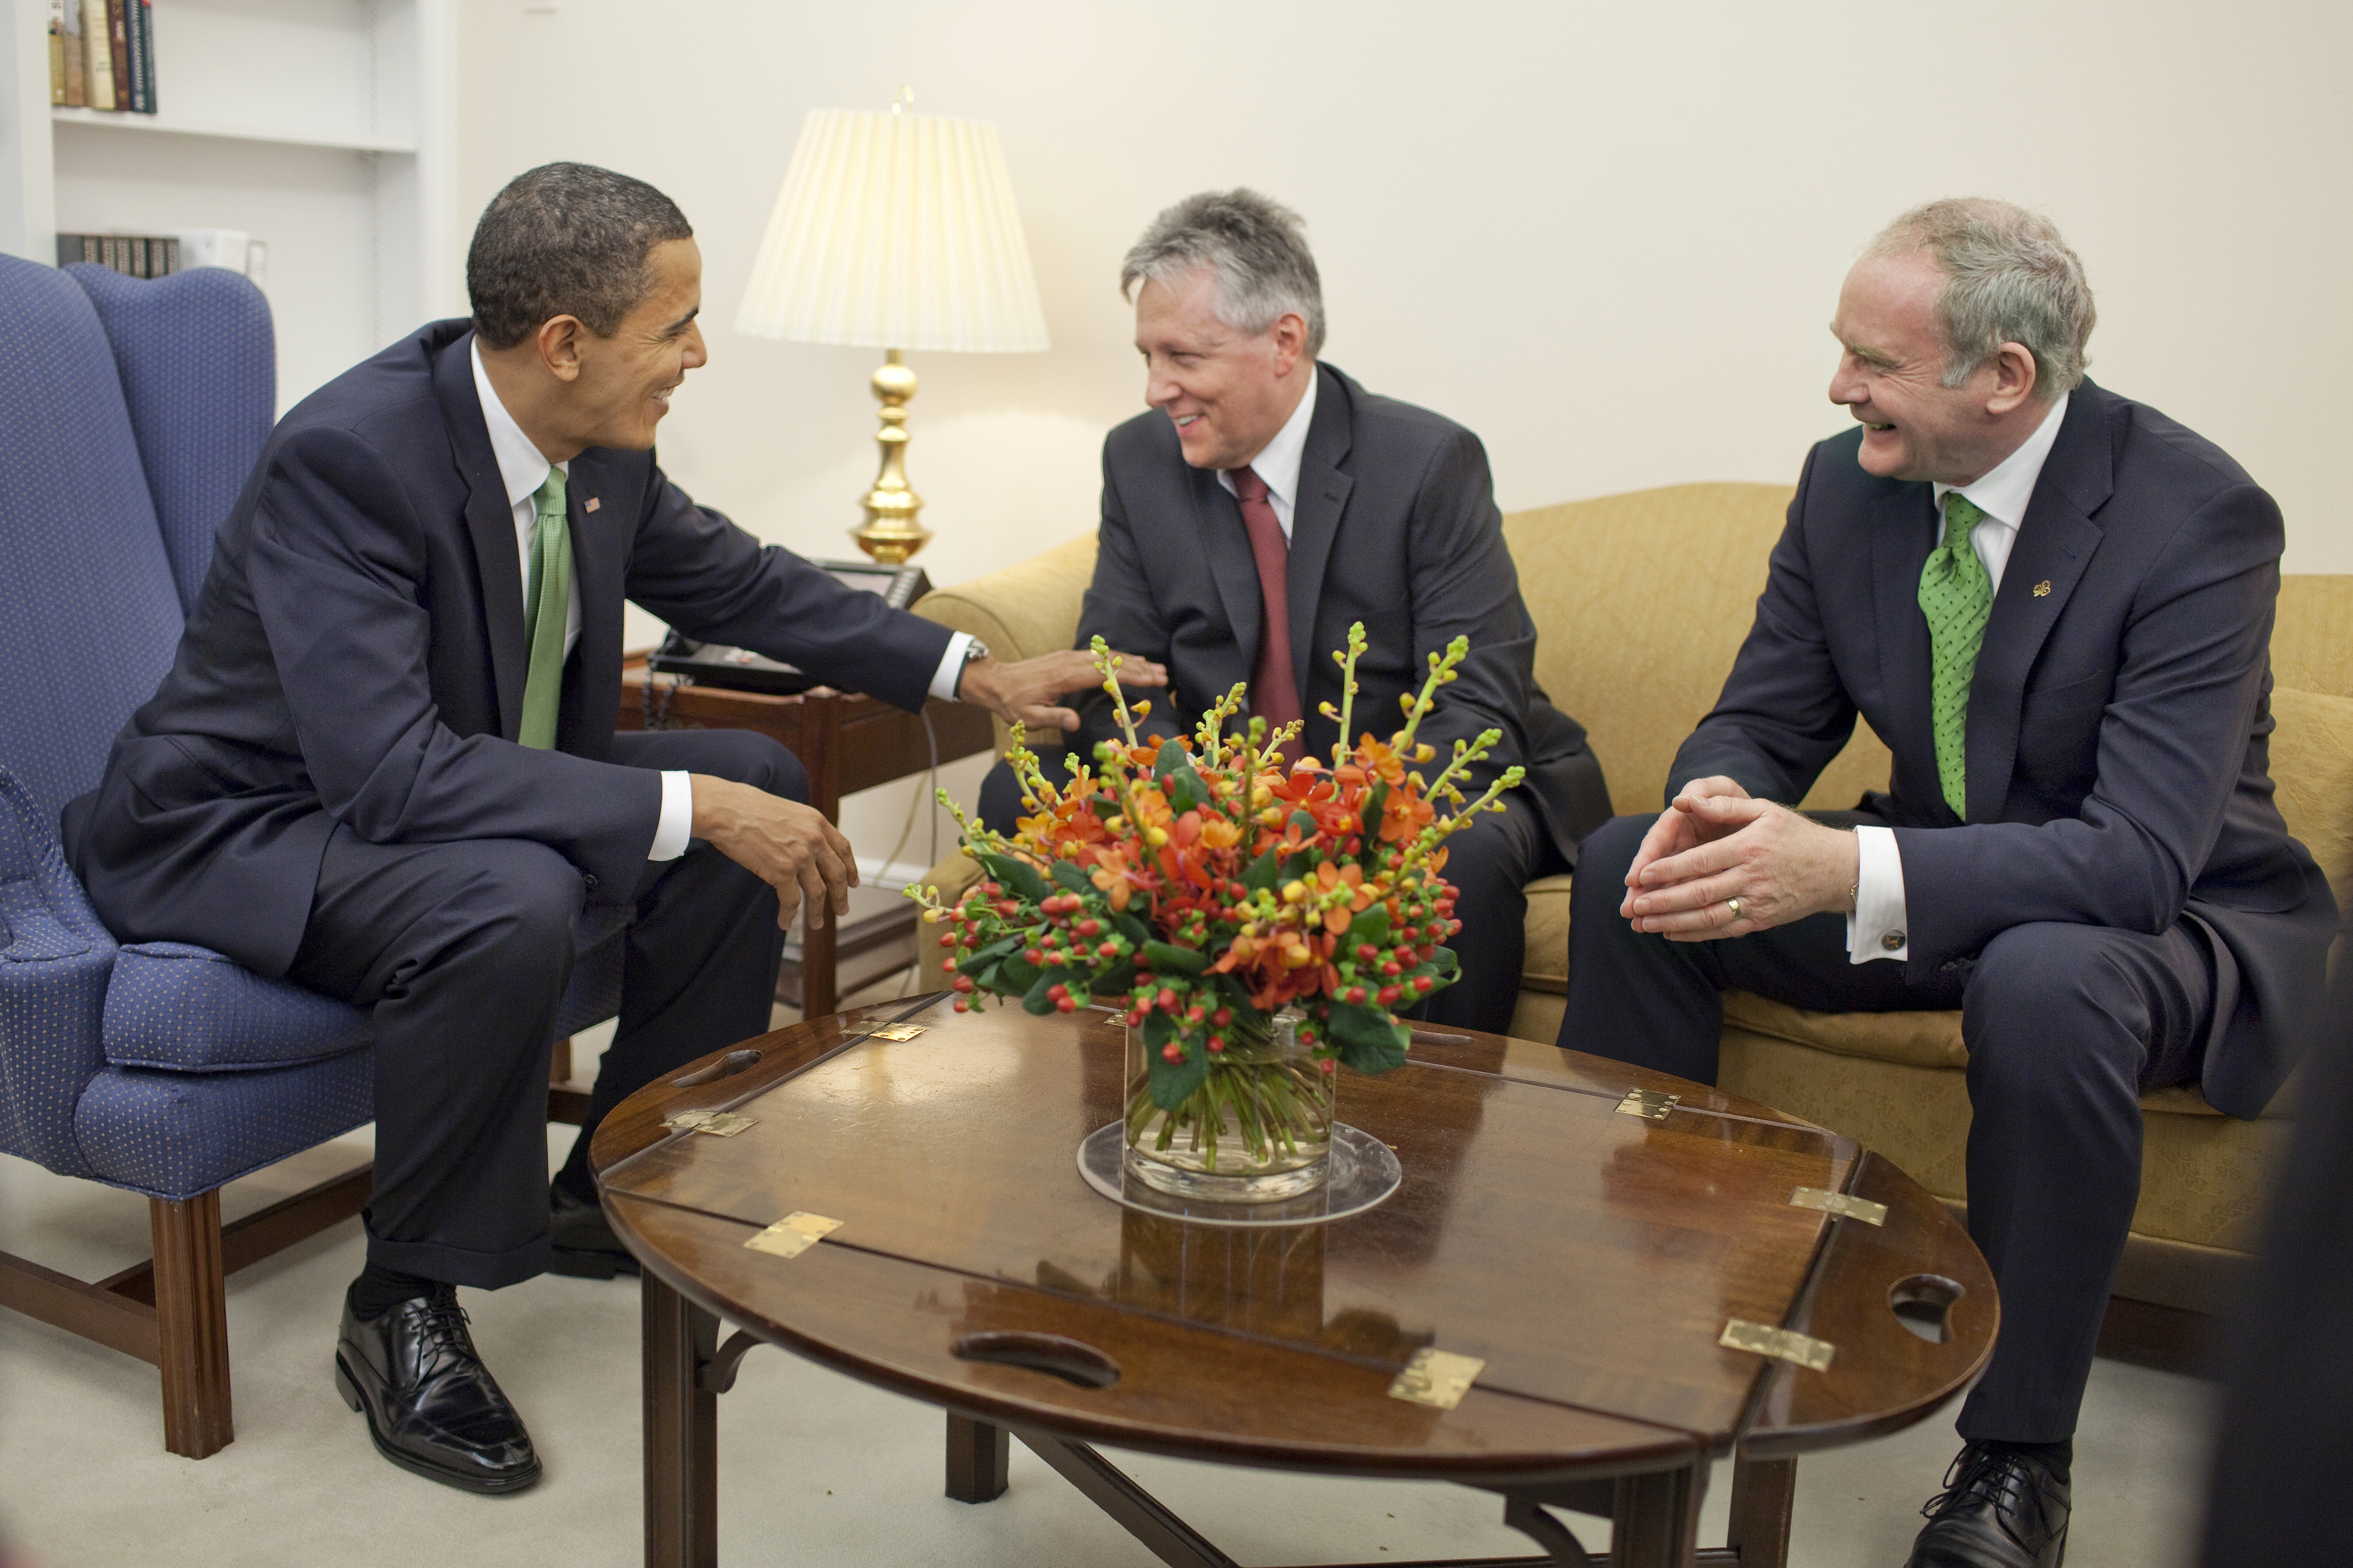 President_Barack_Obama_meets_Northern_Ireland_First_Minister_Peter_Robinson_and_Deputy_First_Minister_Martin_McGuinness